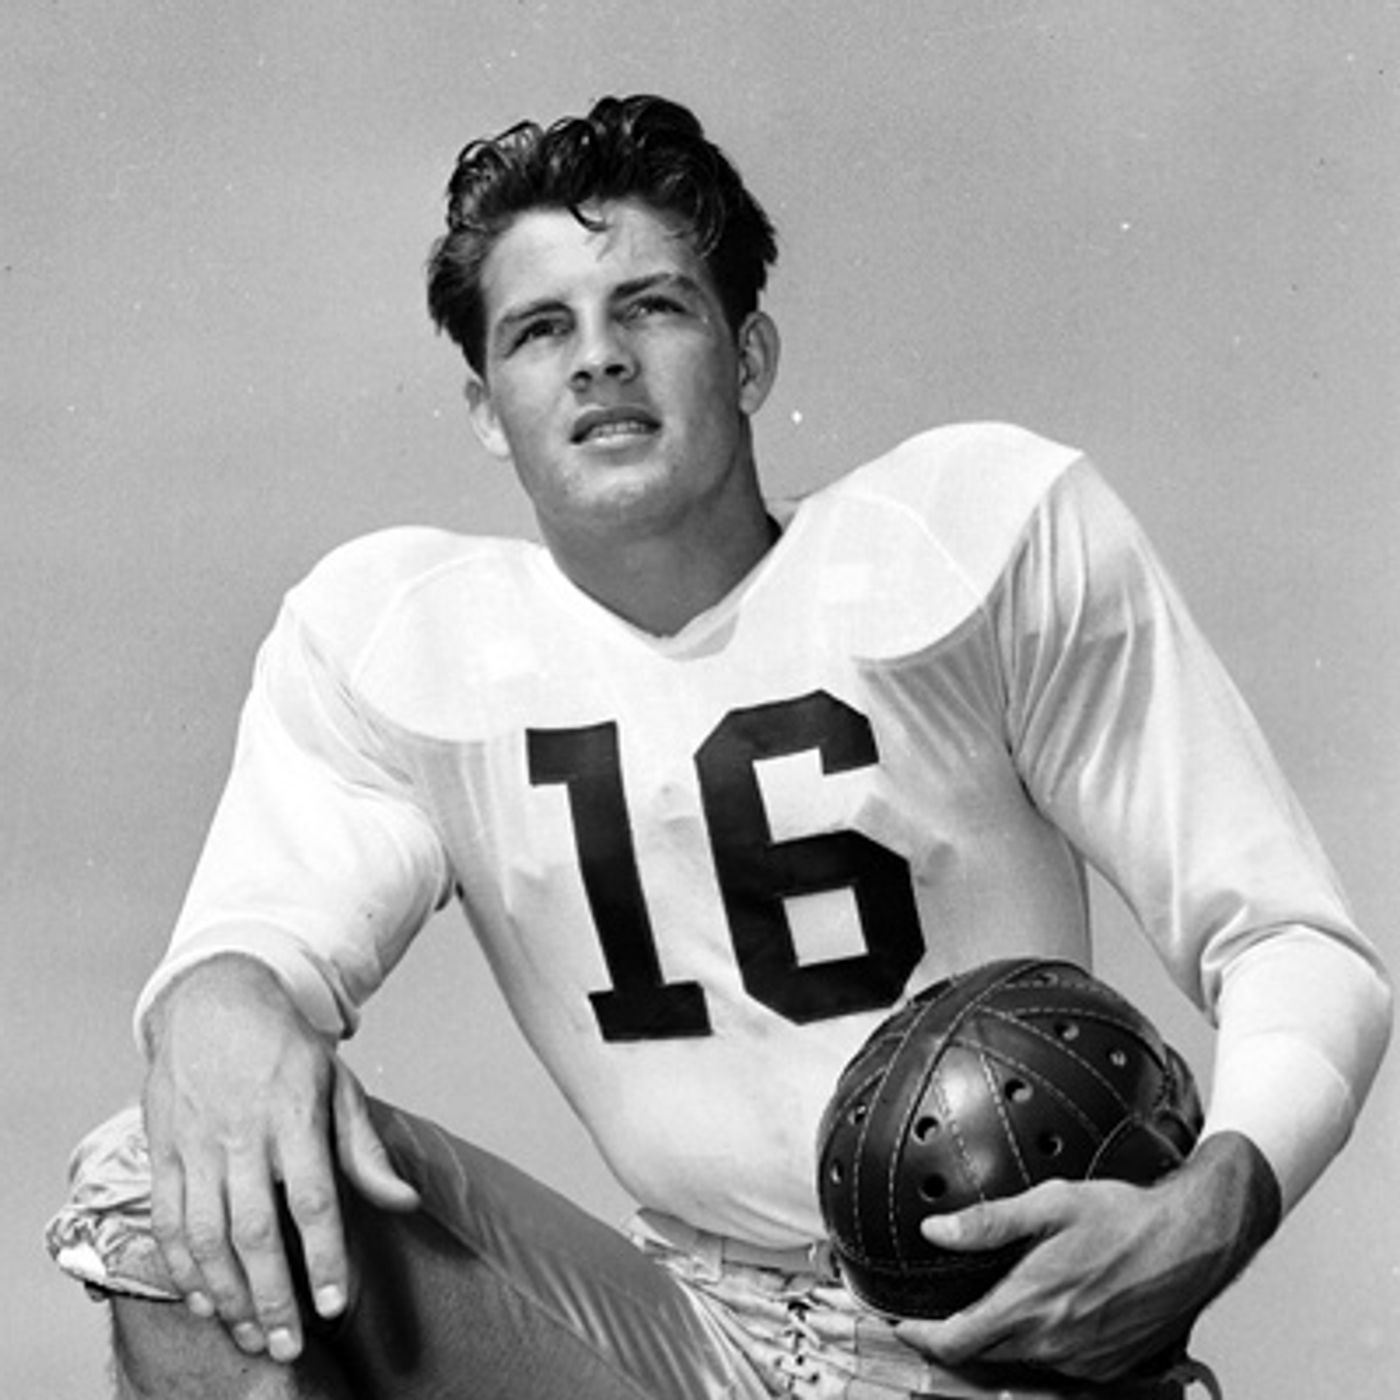 Frank Gifford - Player and Broadcaster